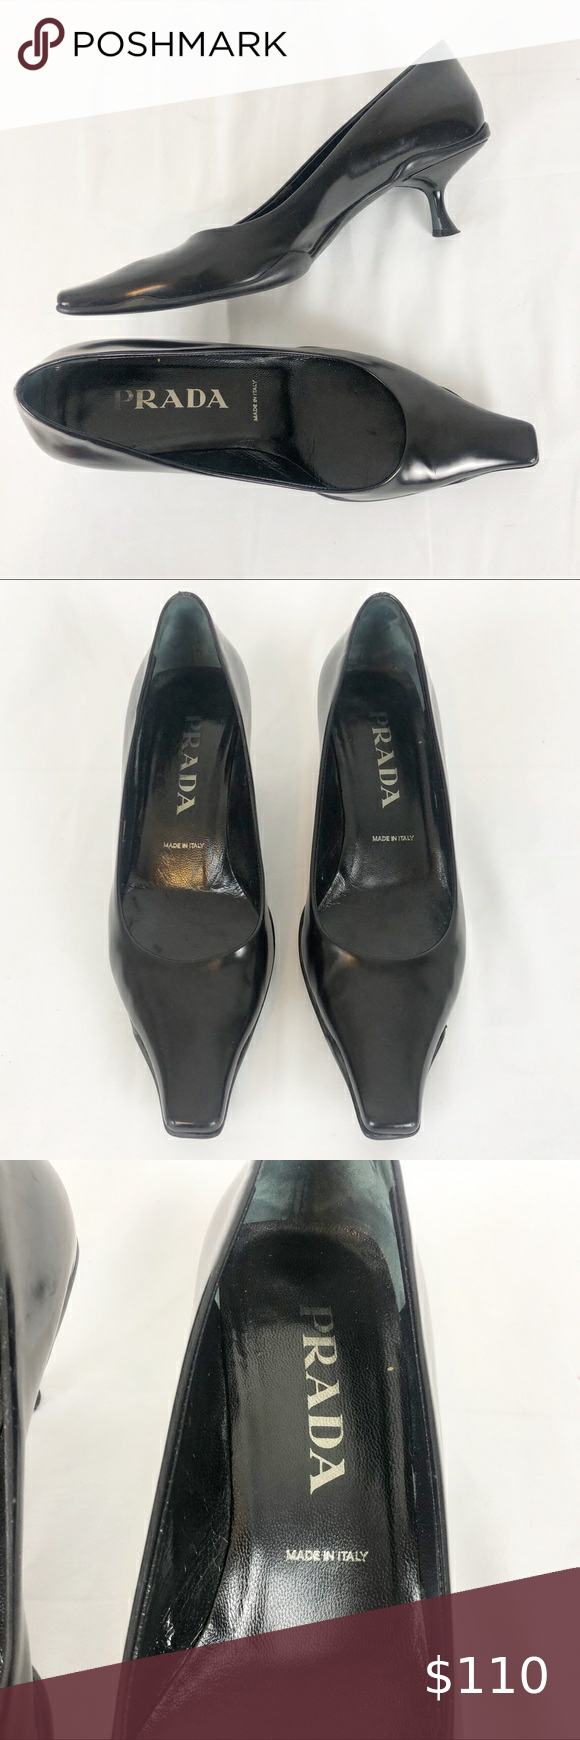 Vintage 1990 S Prada Black Kitten Heels 37 In 2020 Black Kitten Heels Heels Shoes Women Heels